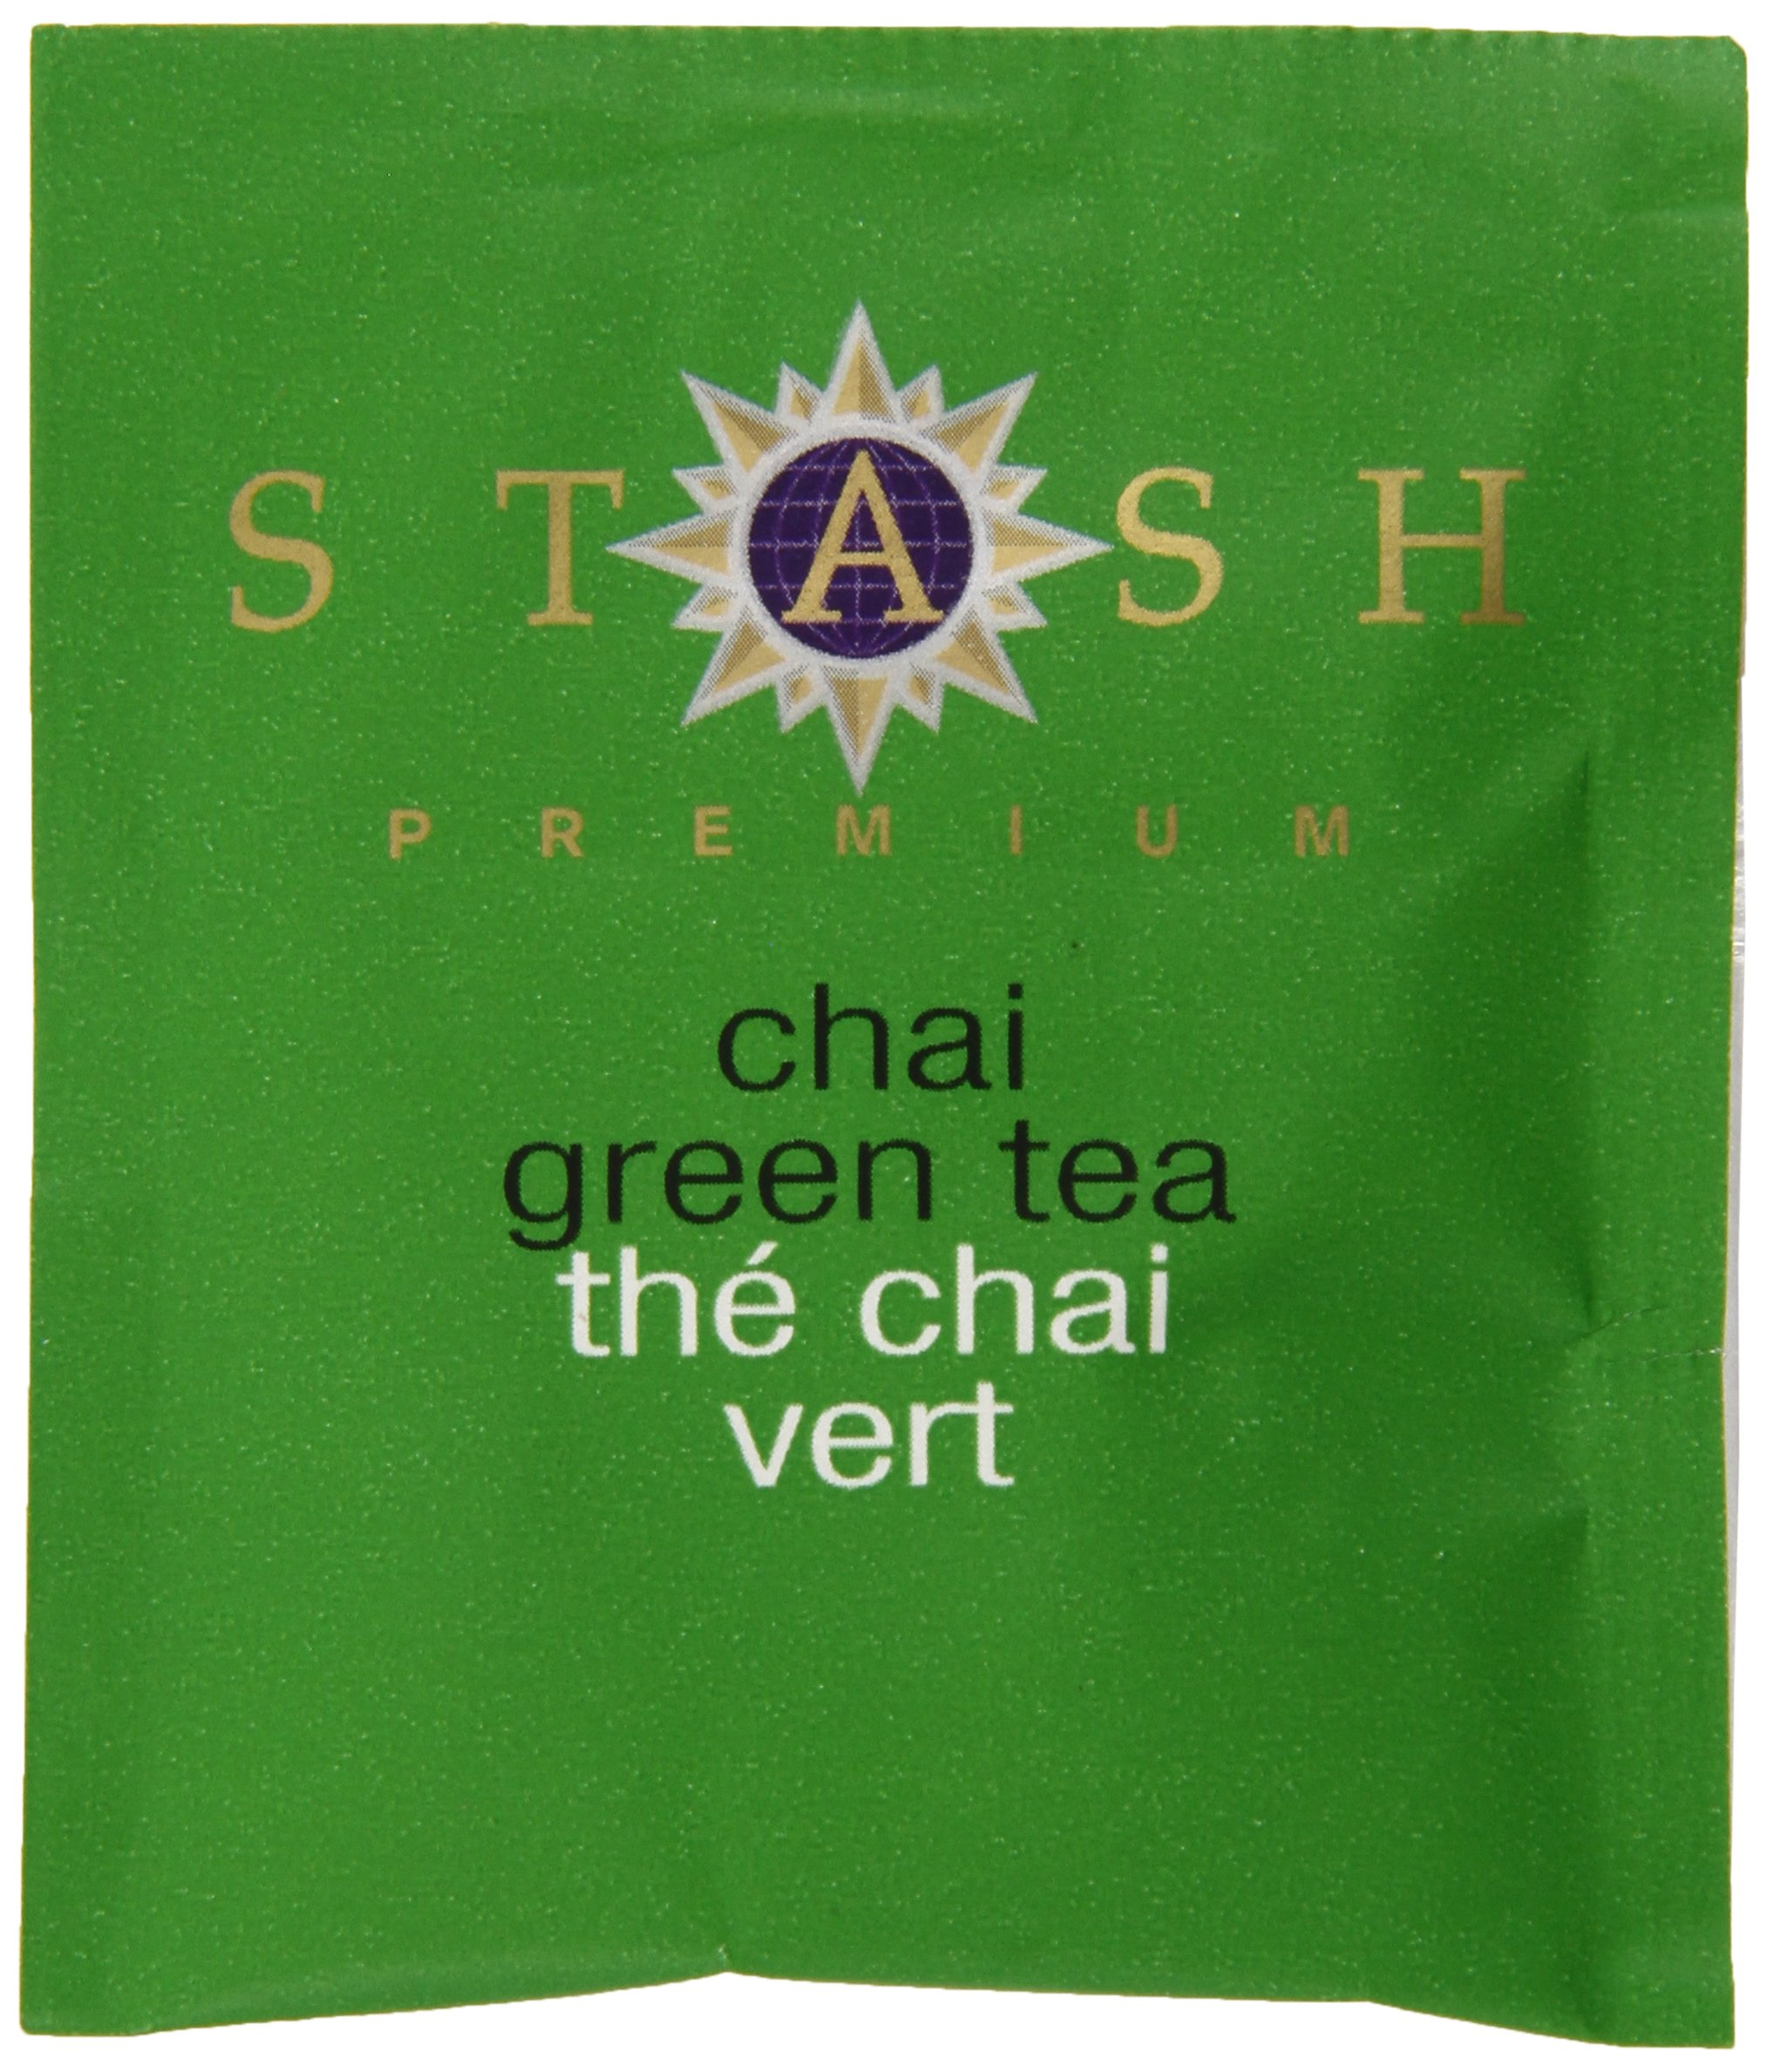 Stash Tea Green Chai Tea 10 Count Tea Bags in Foil (Pack of 12) (packaging may vary) Individual Spiced Green Tea Bags for Use in Teapots Mugs or Teacups, Brew Hot Tea or Iced Tea by Stash Tea (Image #1)